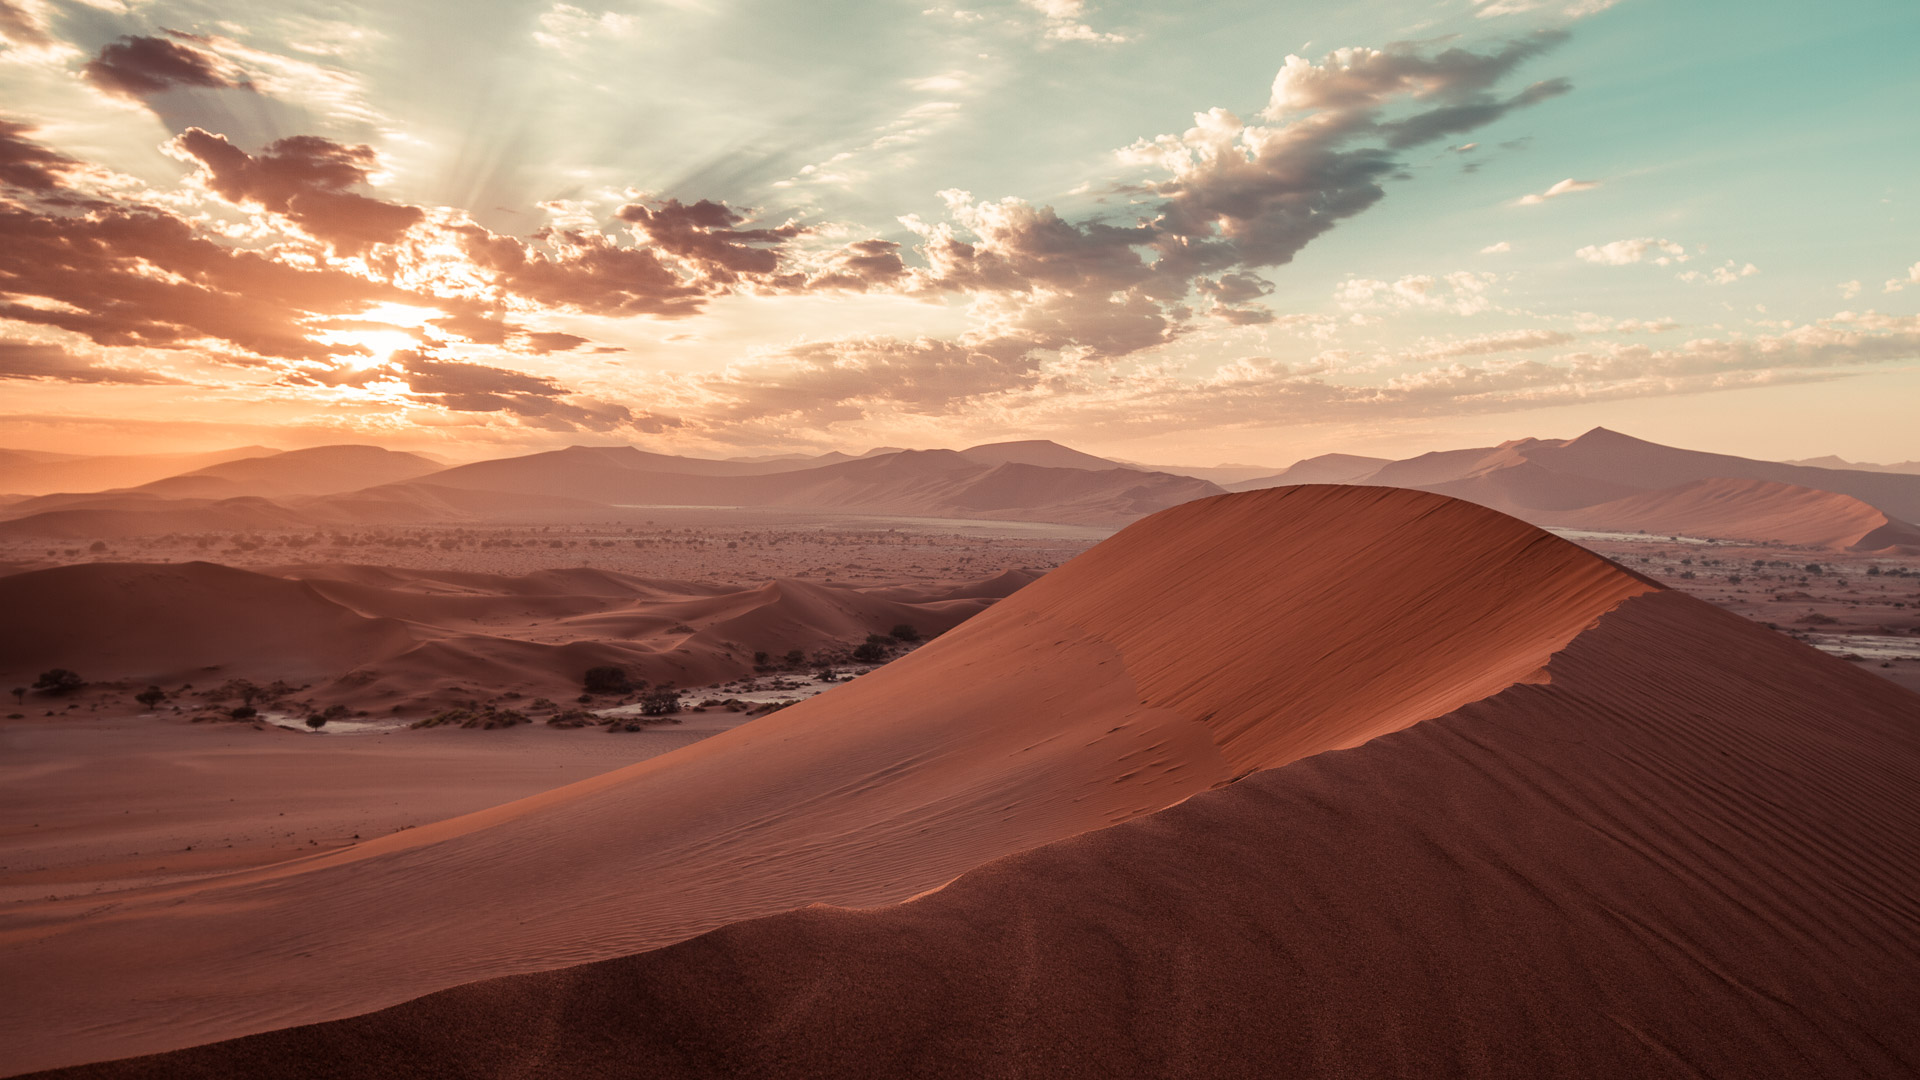 The two dawn images photographed from the top of the Big Mamma dune.